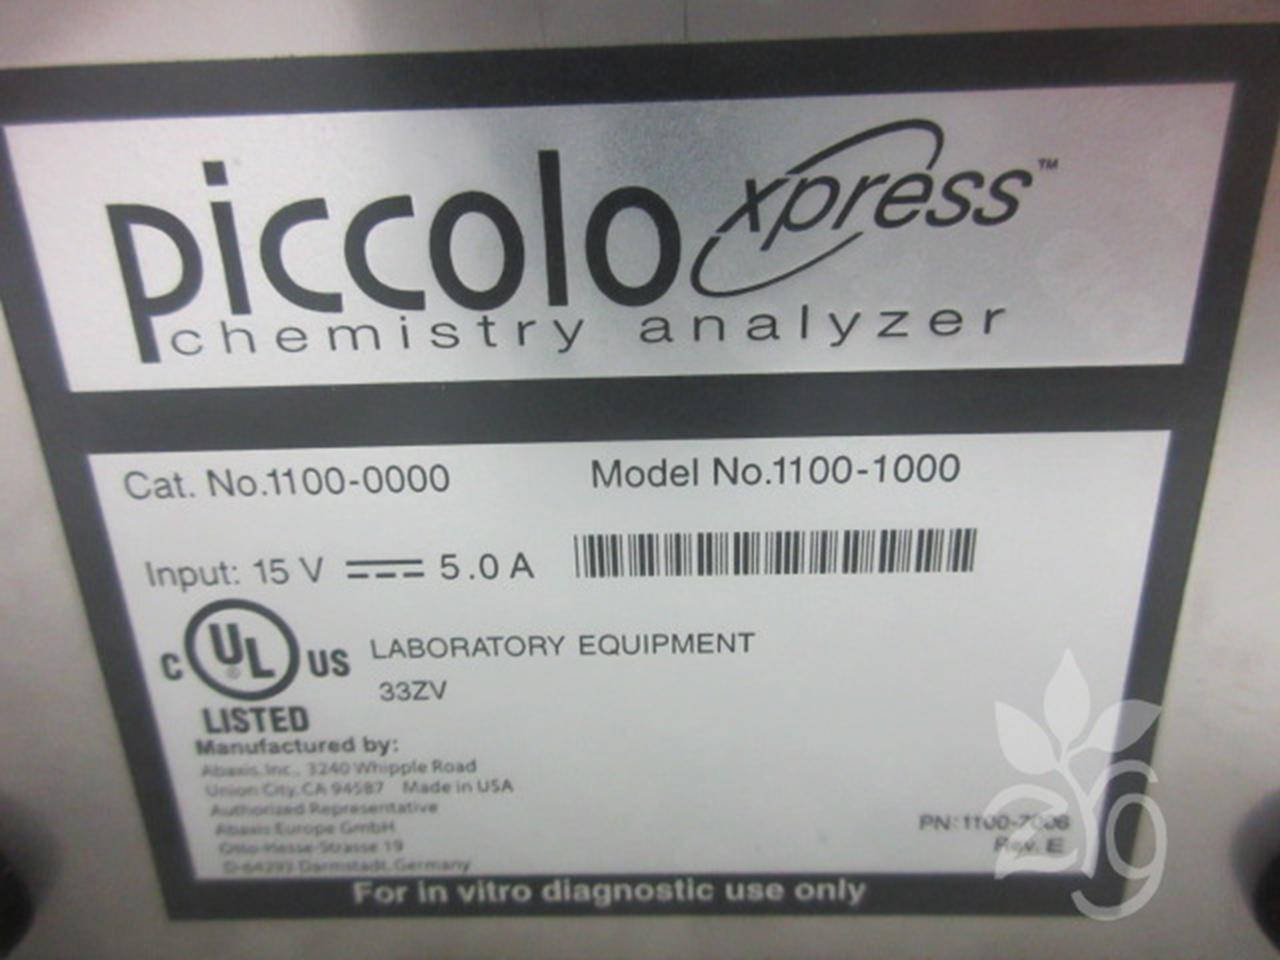 Product Details ABAXIS PICCOLO XPRESS CHEMISTRY ANALYZER